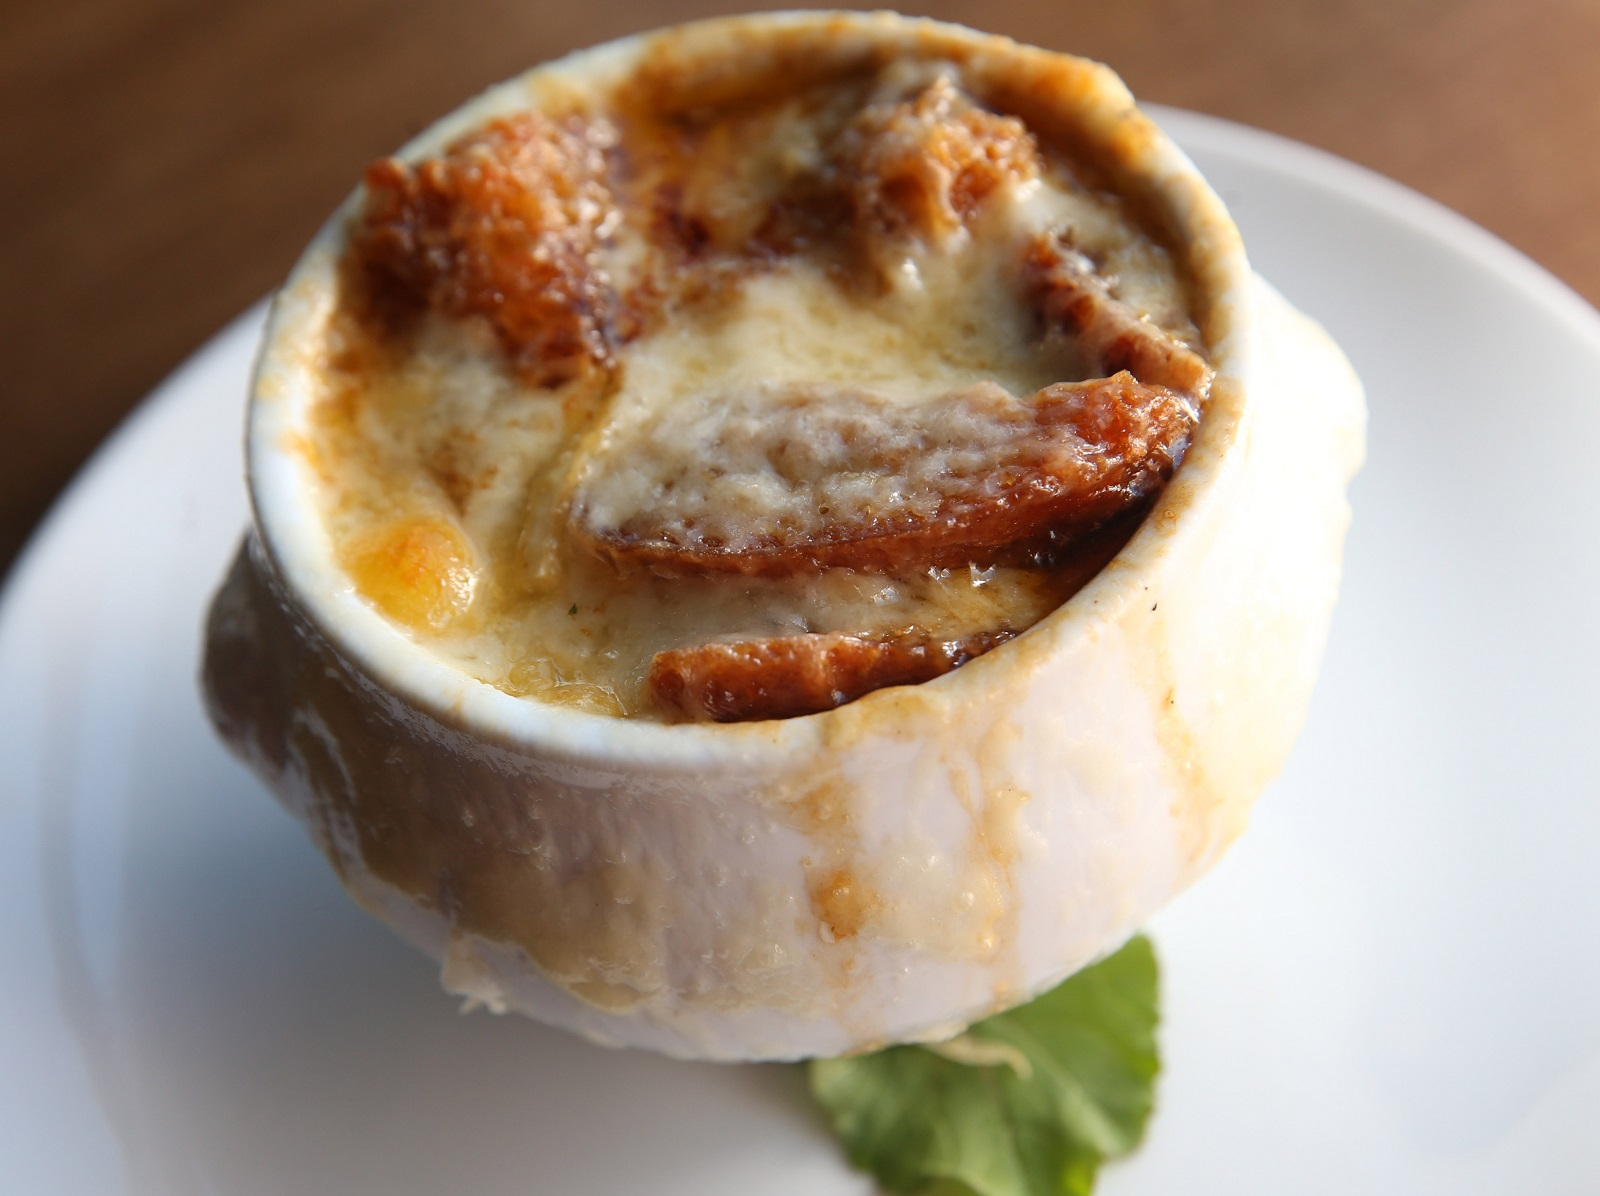 The French onion soup is made with Plato Dale onions, croutons and gruyere. (Sharon Cantillon/Buffalo News)